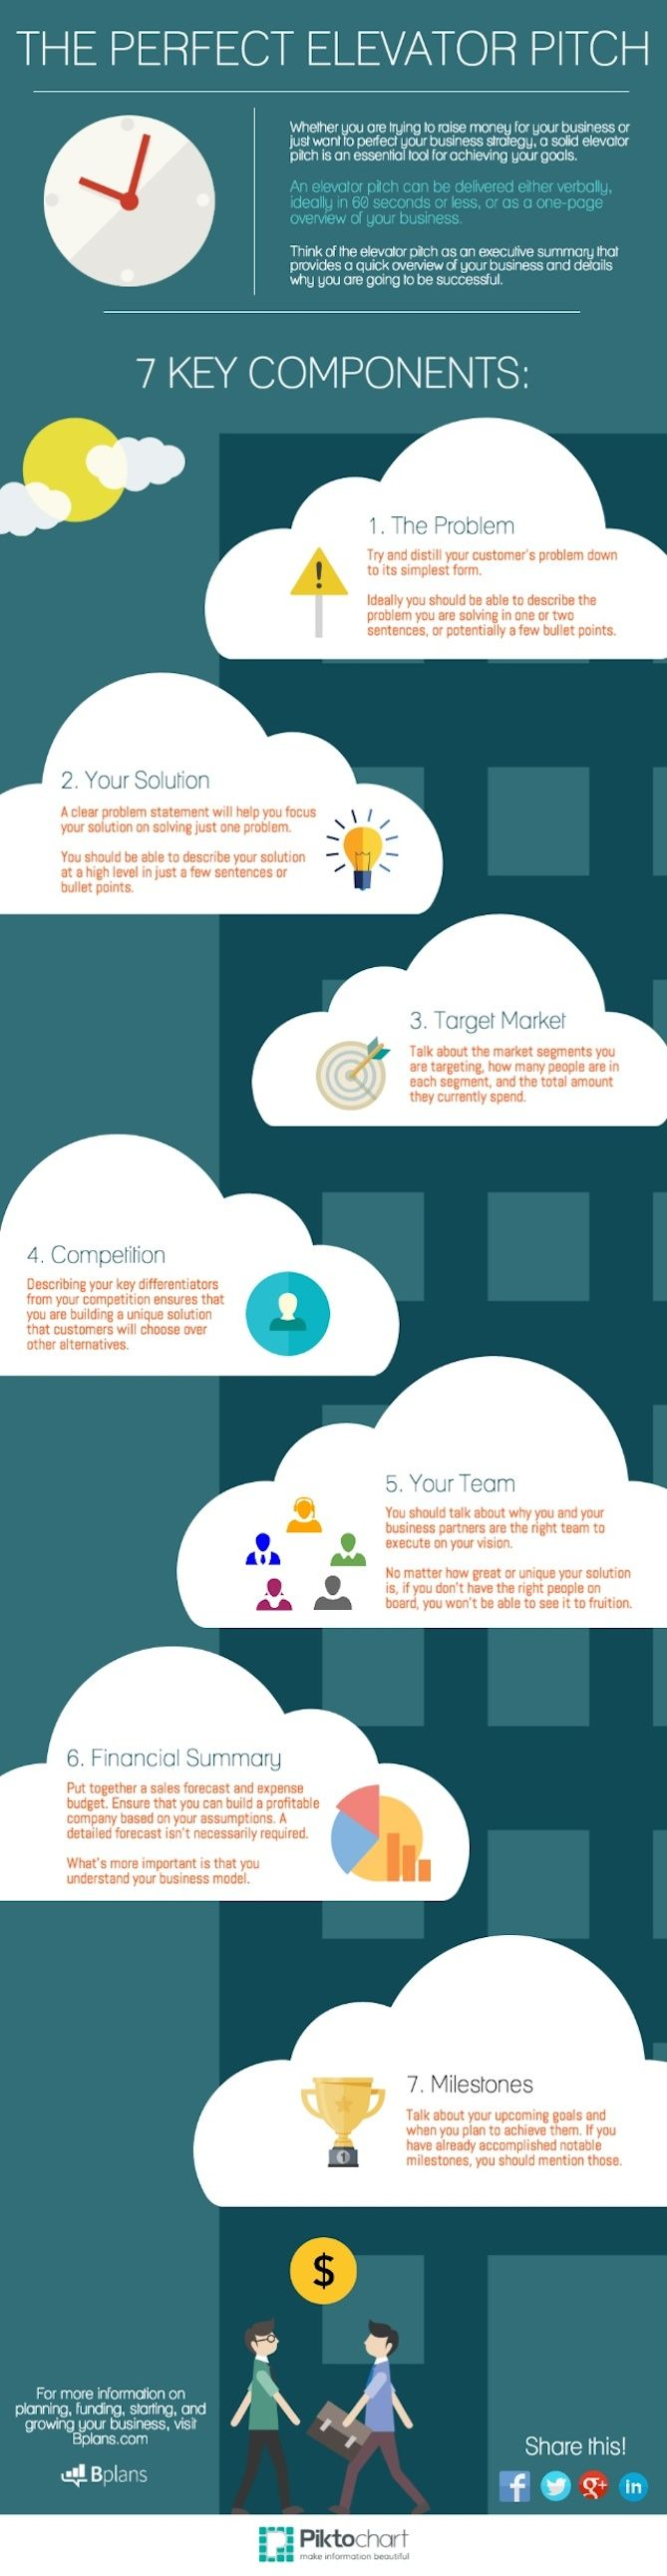 Infographic - The 7 Parts of a Perfect Elevator Pitch. This infographic explains each component of an elevator pitch to ensure you hit the highs and provide all the necessary information. What's your top tip for entrepreneurs pitching to investors?